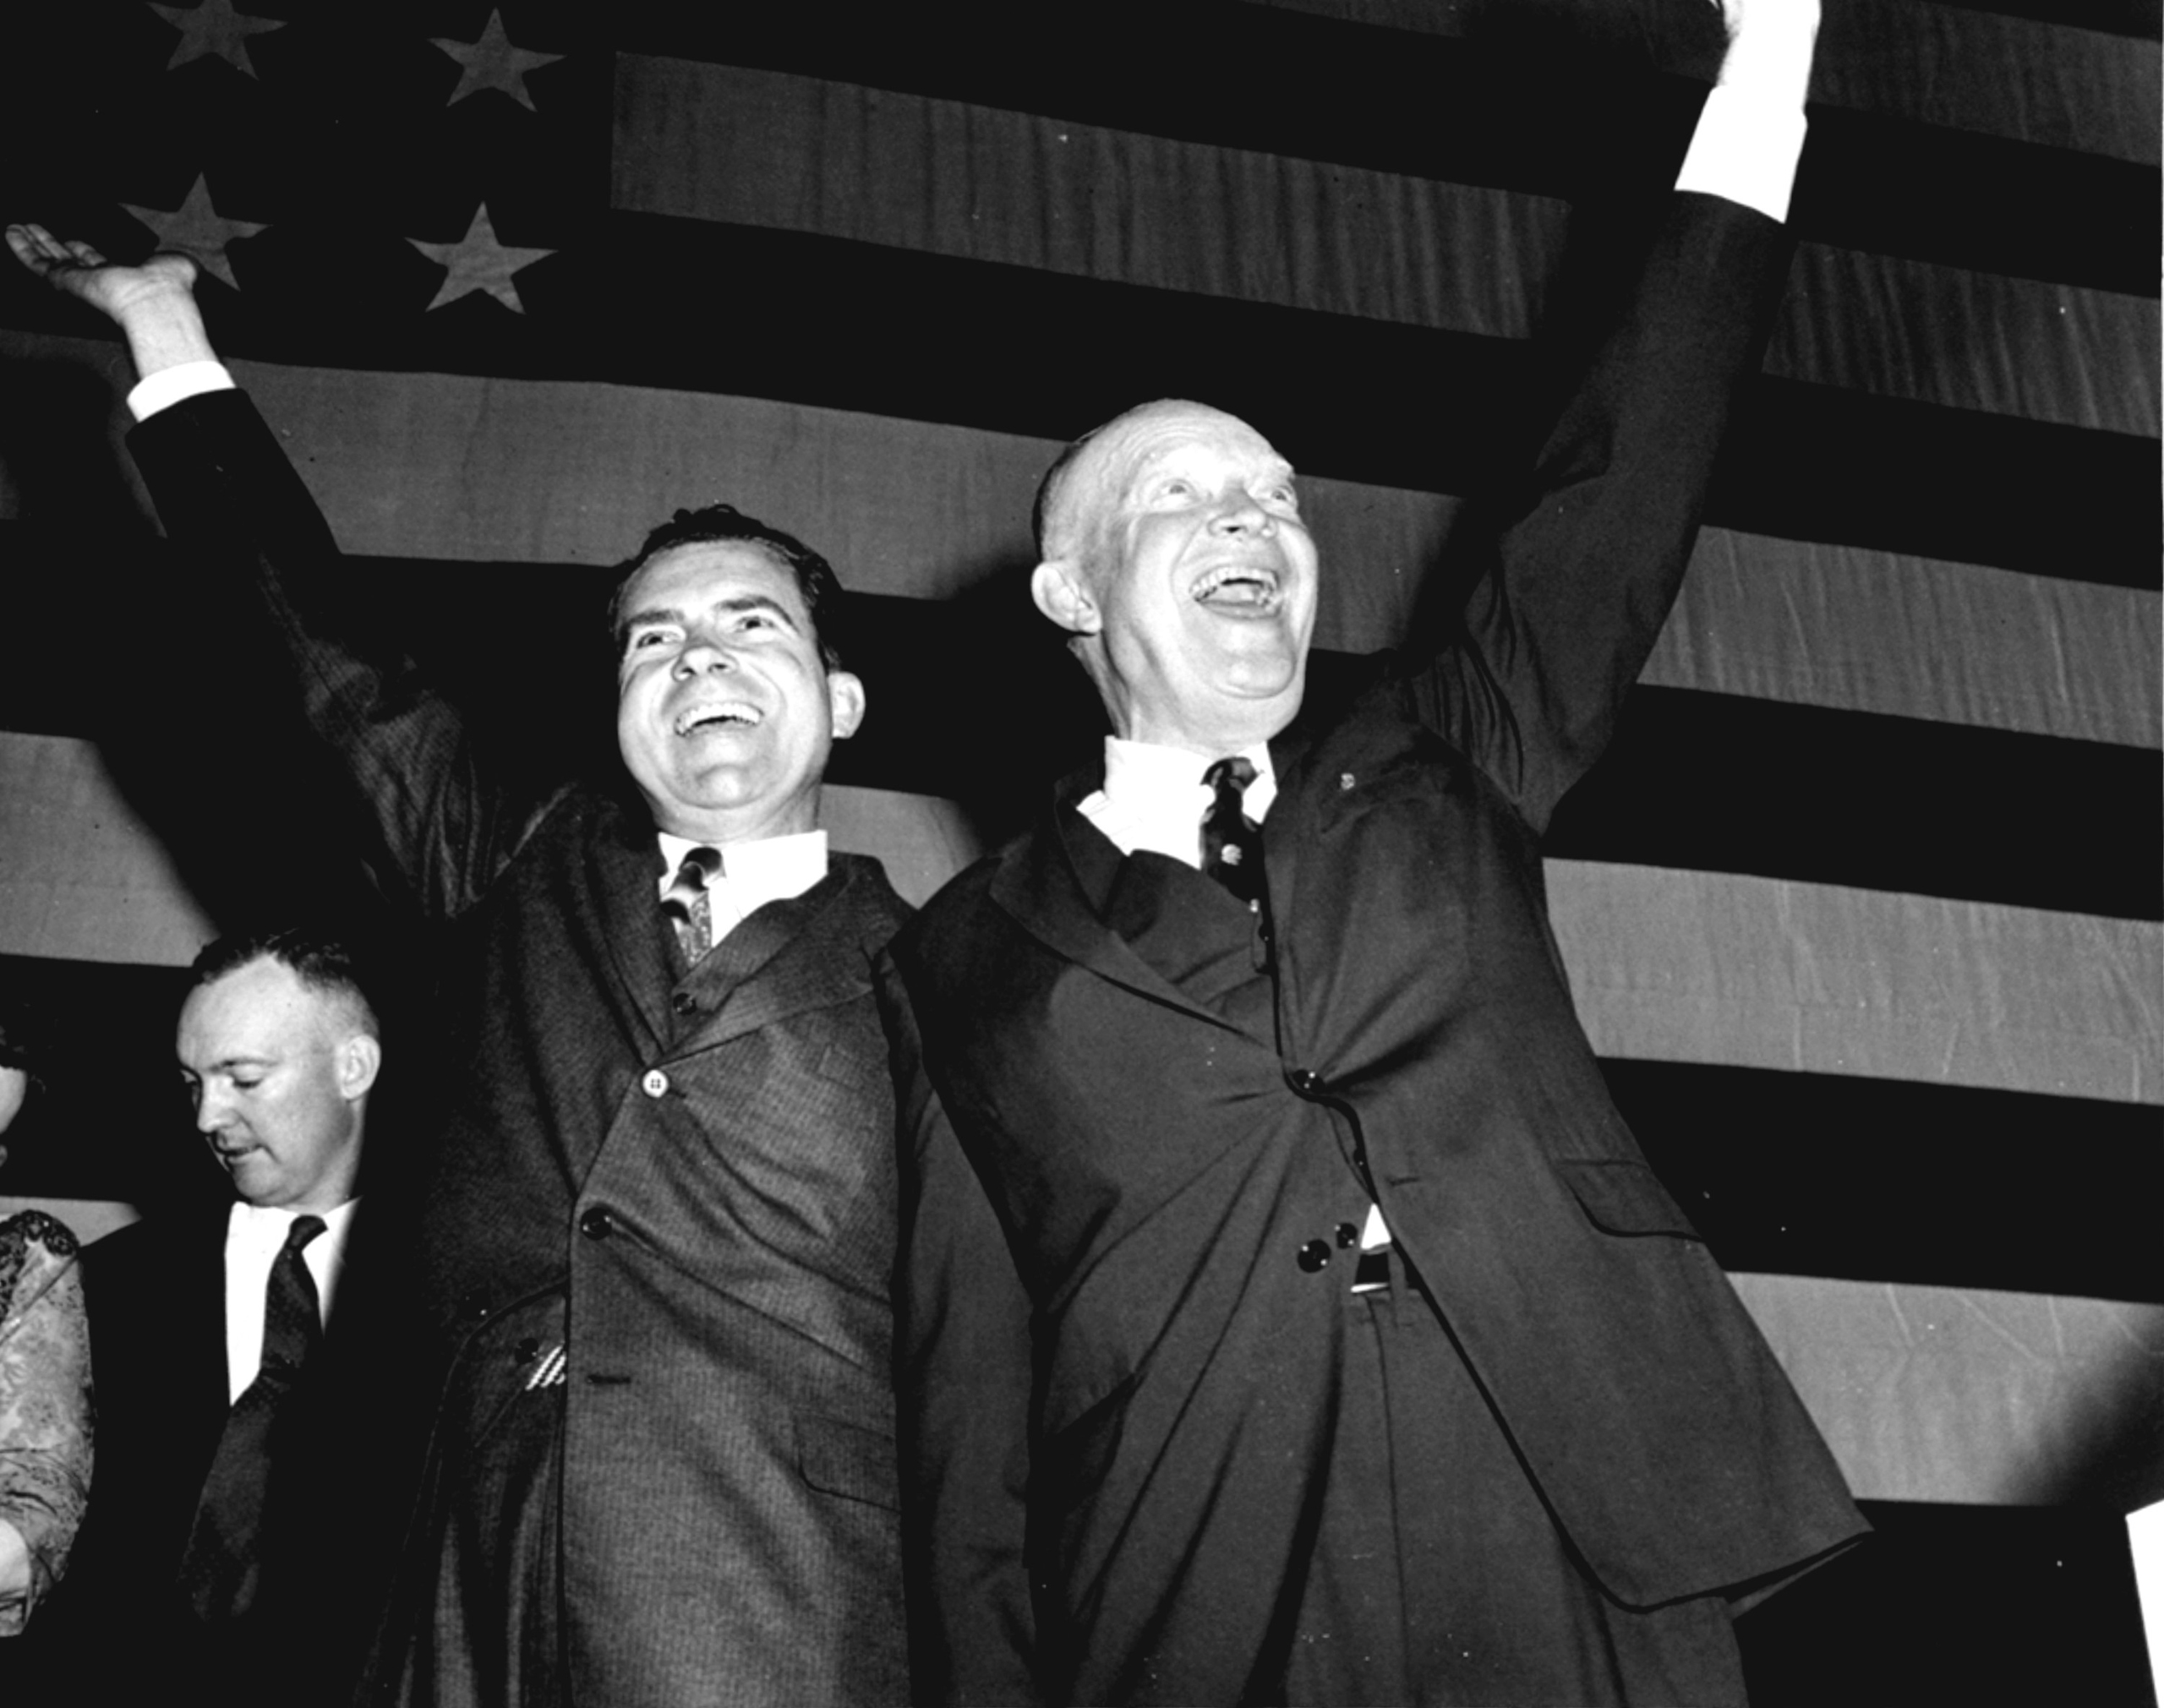 President-elect Dwight D. Eisenhower and Vice President Richard Nixon salute a cheering  crowd at Republican election headquarters after Adlai Stevenson conceded, with the Republicans winning in a landslide in Washington, on Nov. 7, 1956.